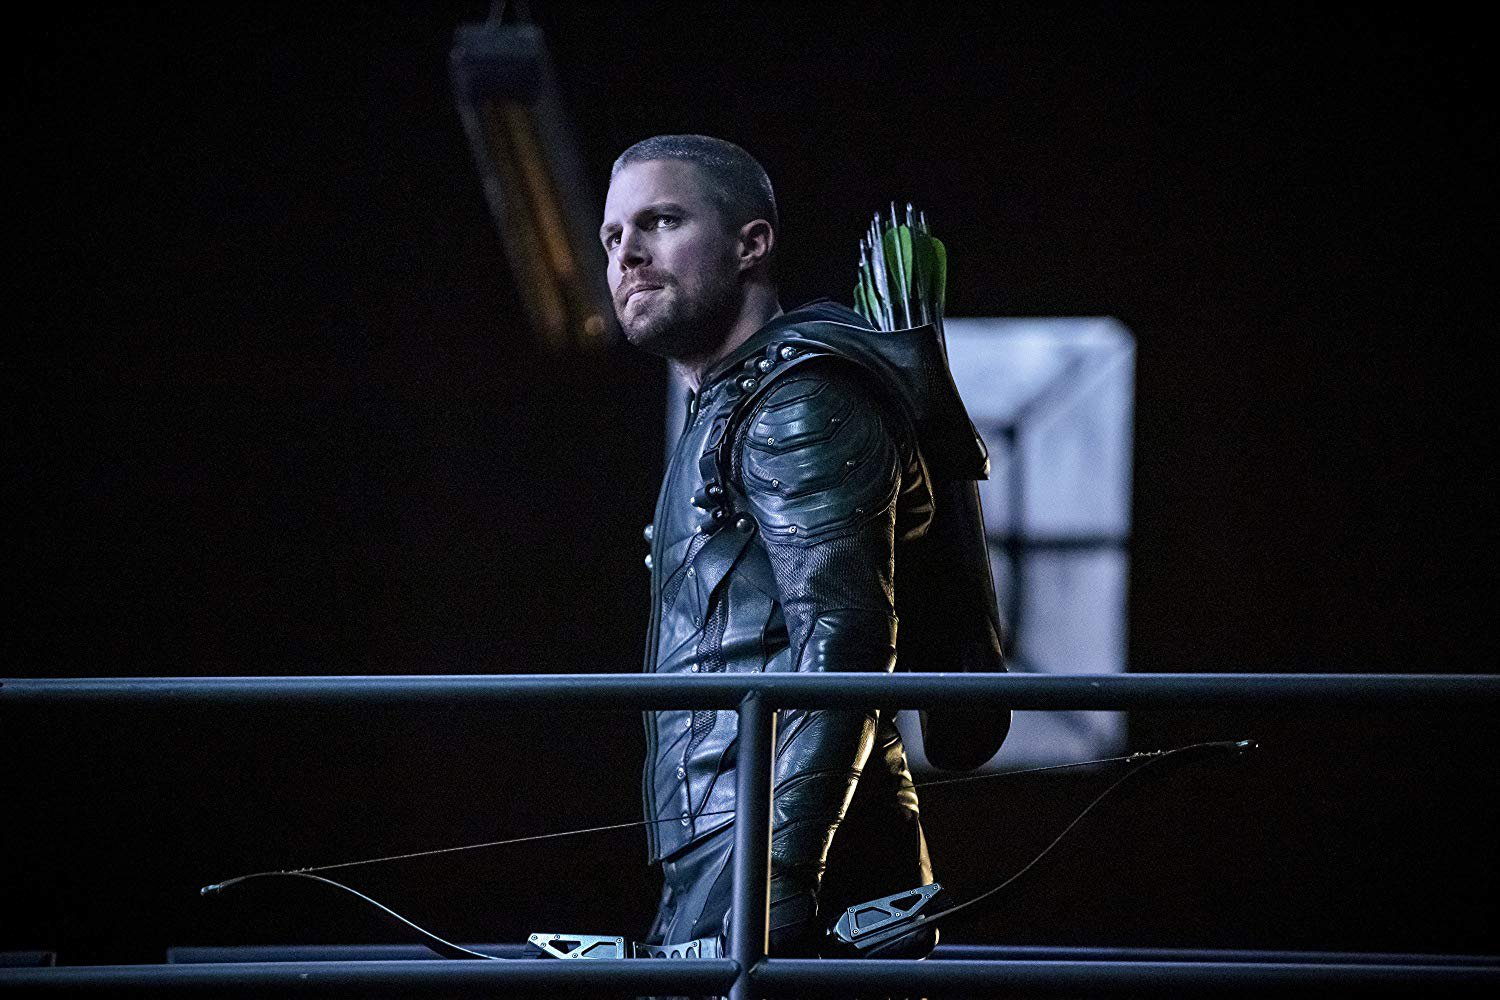 Arrow will officially end after a shortened season 8